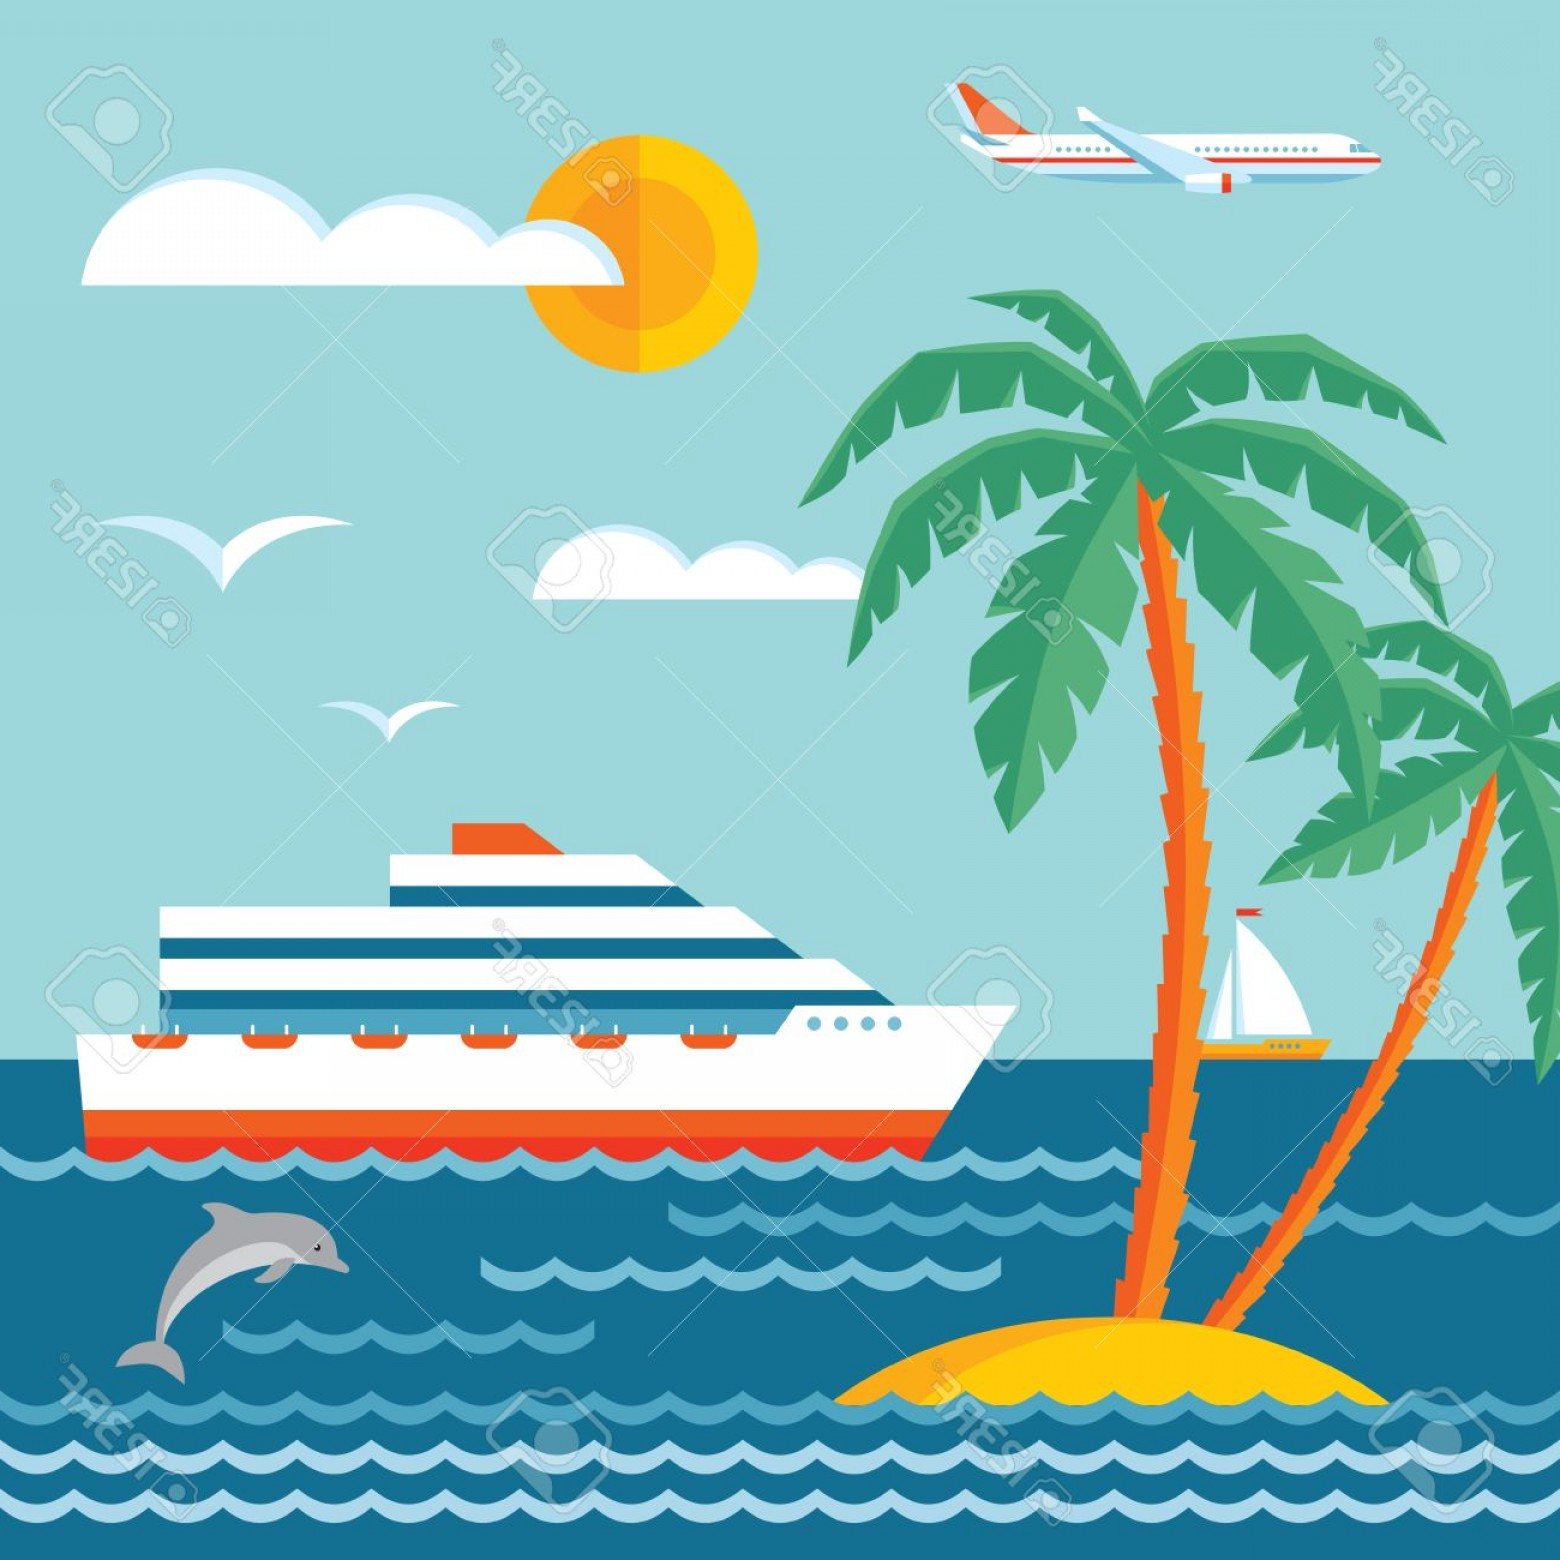 Waves With Cruise Ship Silhouette Vector: Photostock Vector Travel Cruise Vector Concept Illustration In Flat Style Design Cruise Liner Sailboat Sea Waves Palms